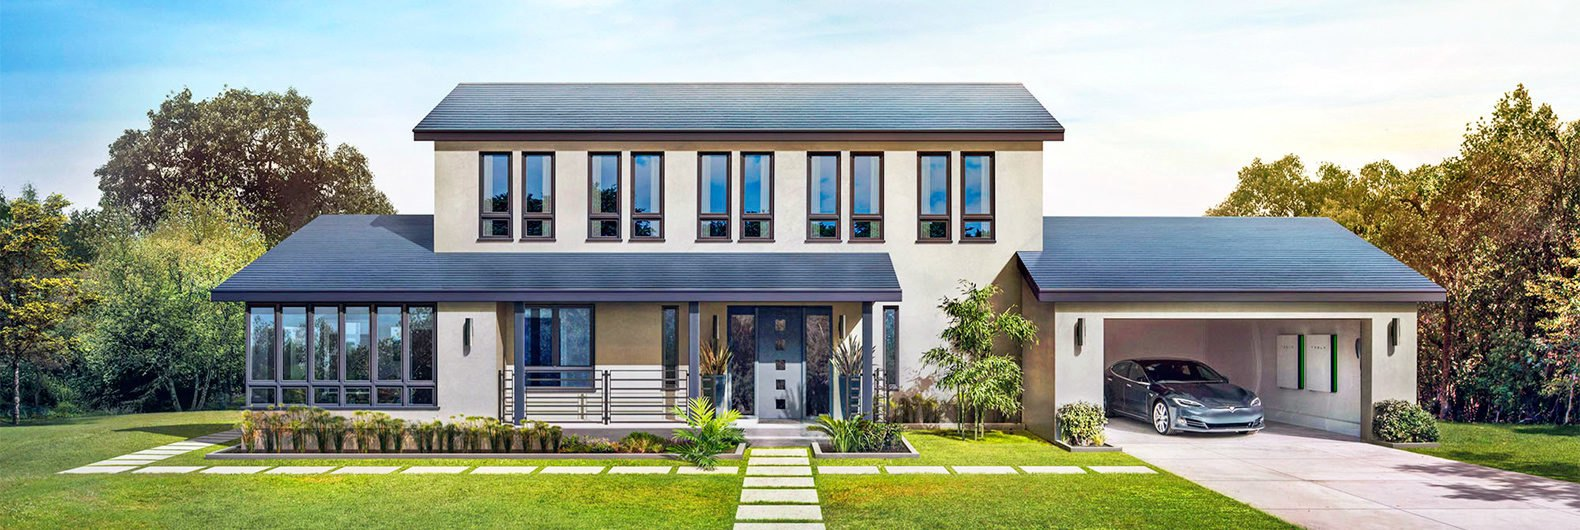 Solar Roof Cost >> Tesla S New Solar Roof Is Actually Cheaper Than A Normal Roof